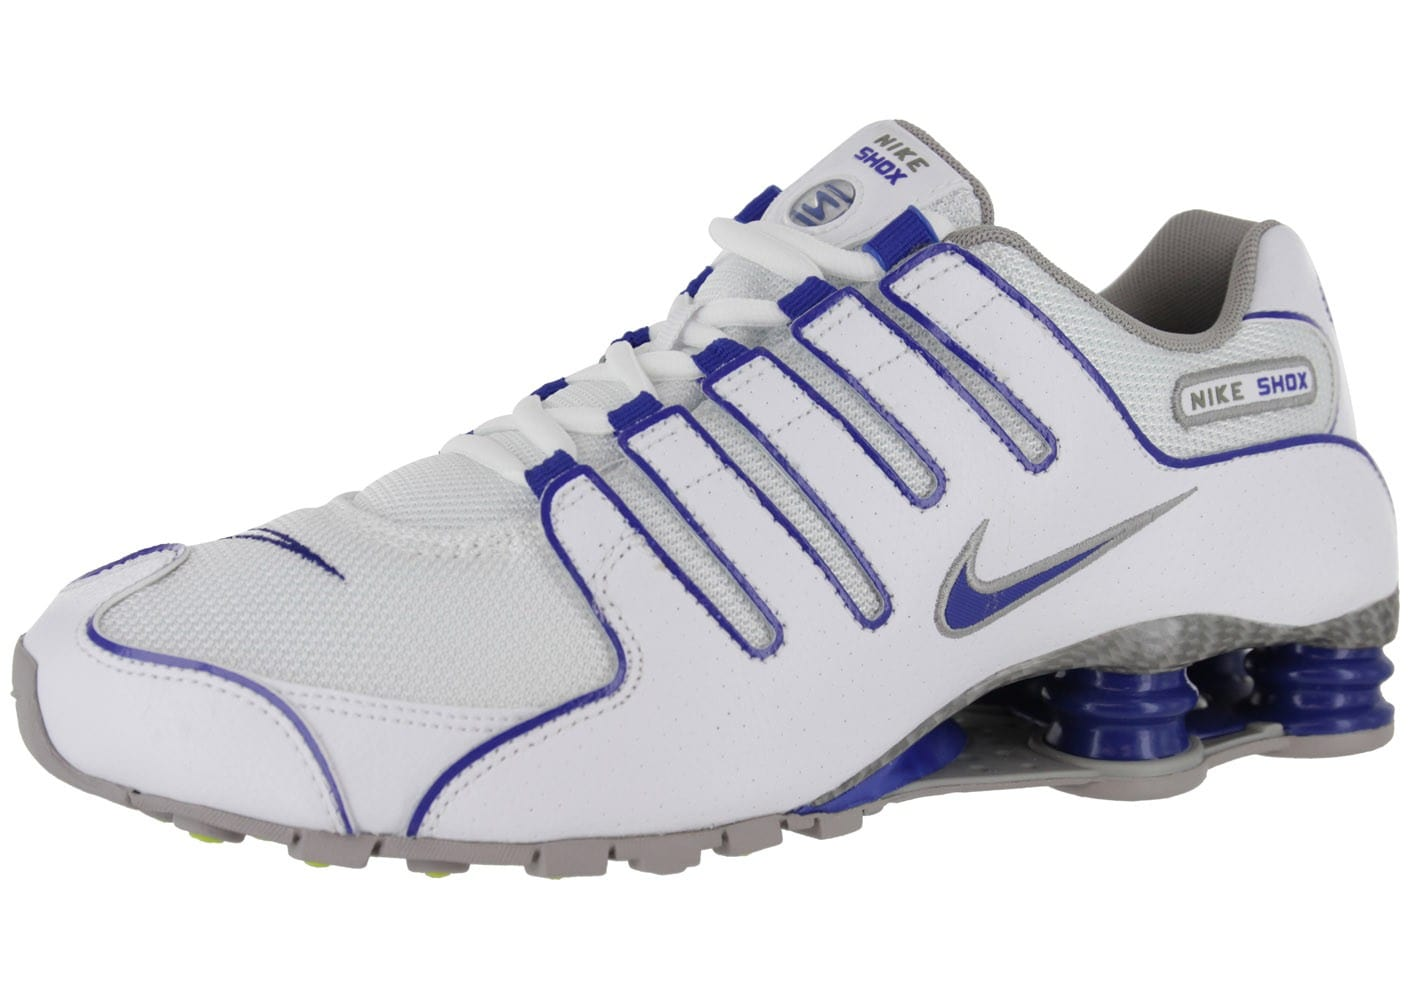 cheap for sale casual shoes super cheap Nike Shox Nz Blanche - Chaussures Baskets homme - Chausport